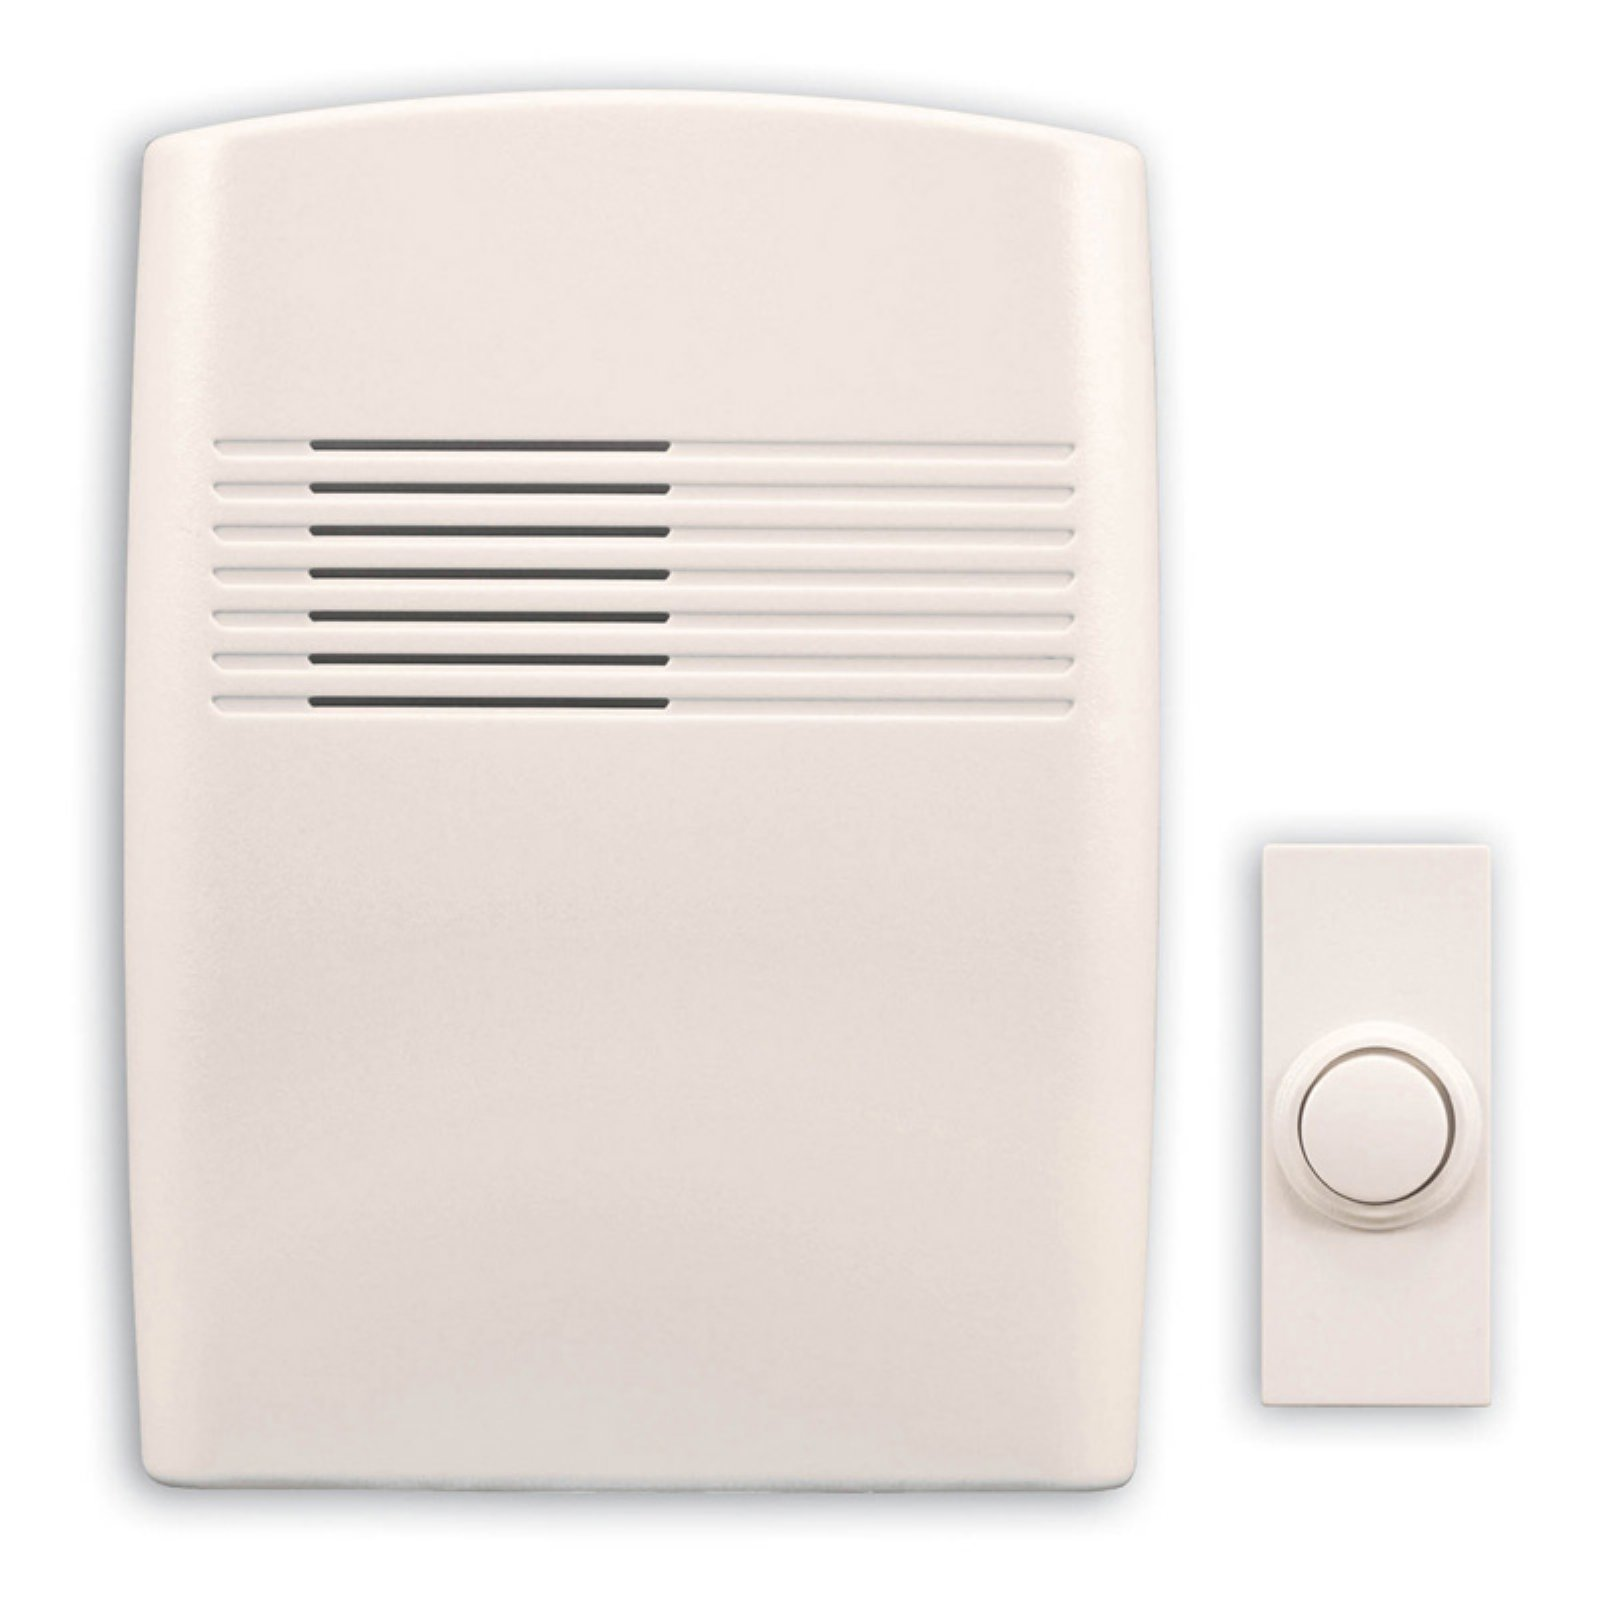 Heathco Wireless Battery-Operated Door Chime with Cover